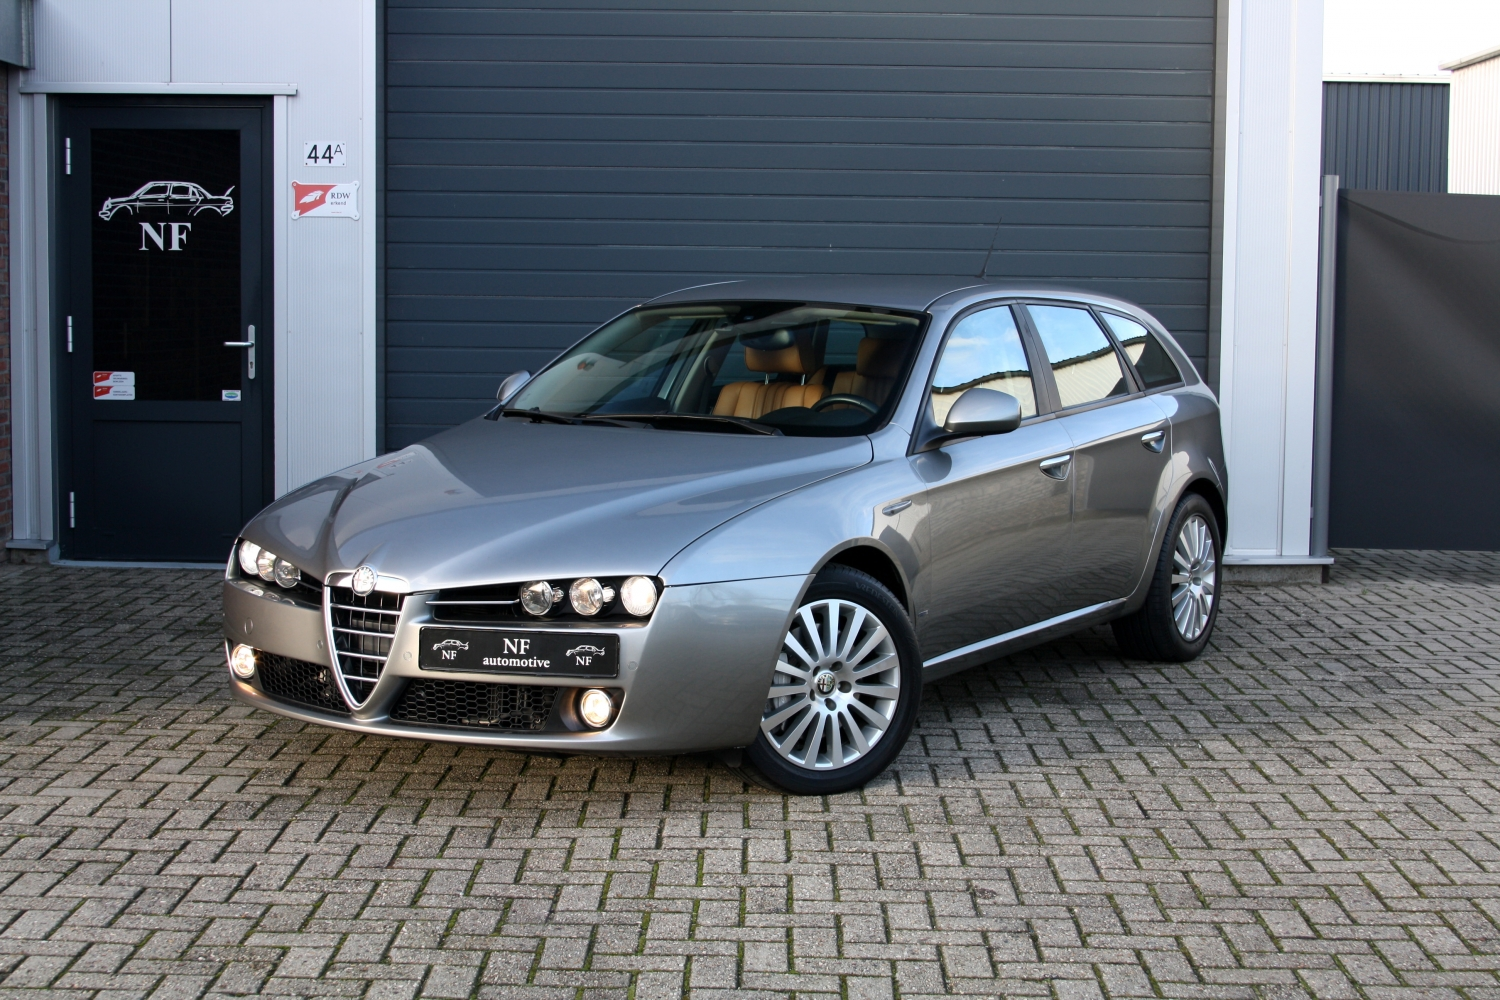 alfa romeo 159 sw 3 2 v6 jts q4 distinctive kopen bij nf automotive. Black Bedroom Furniture Sets. Home Design Ideas